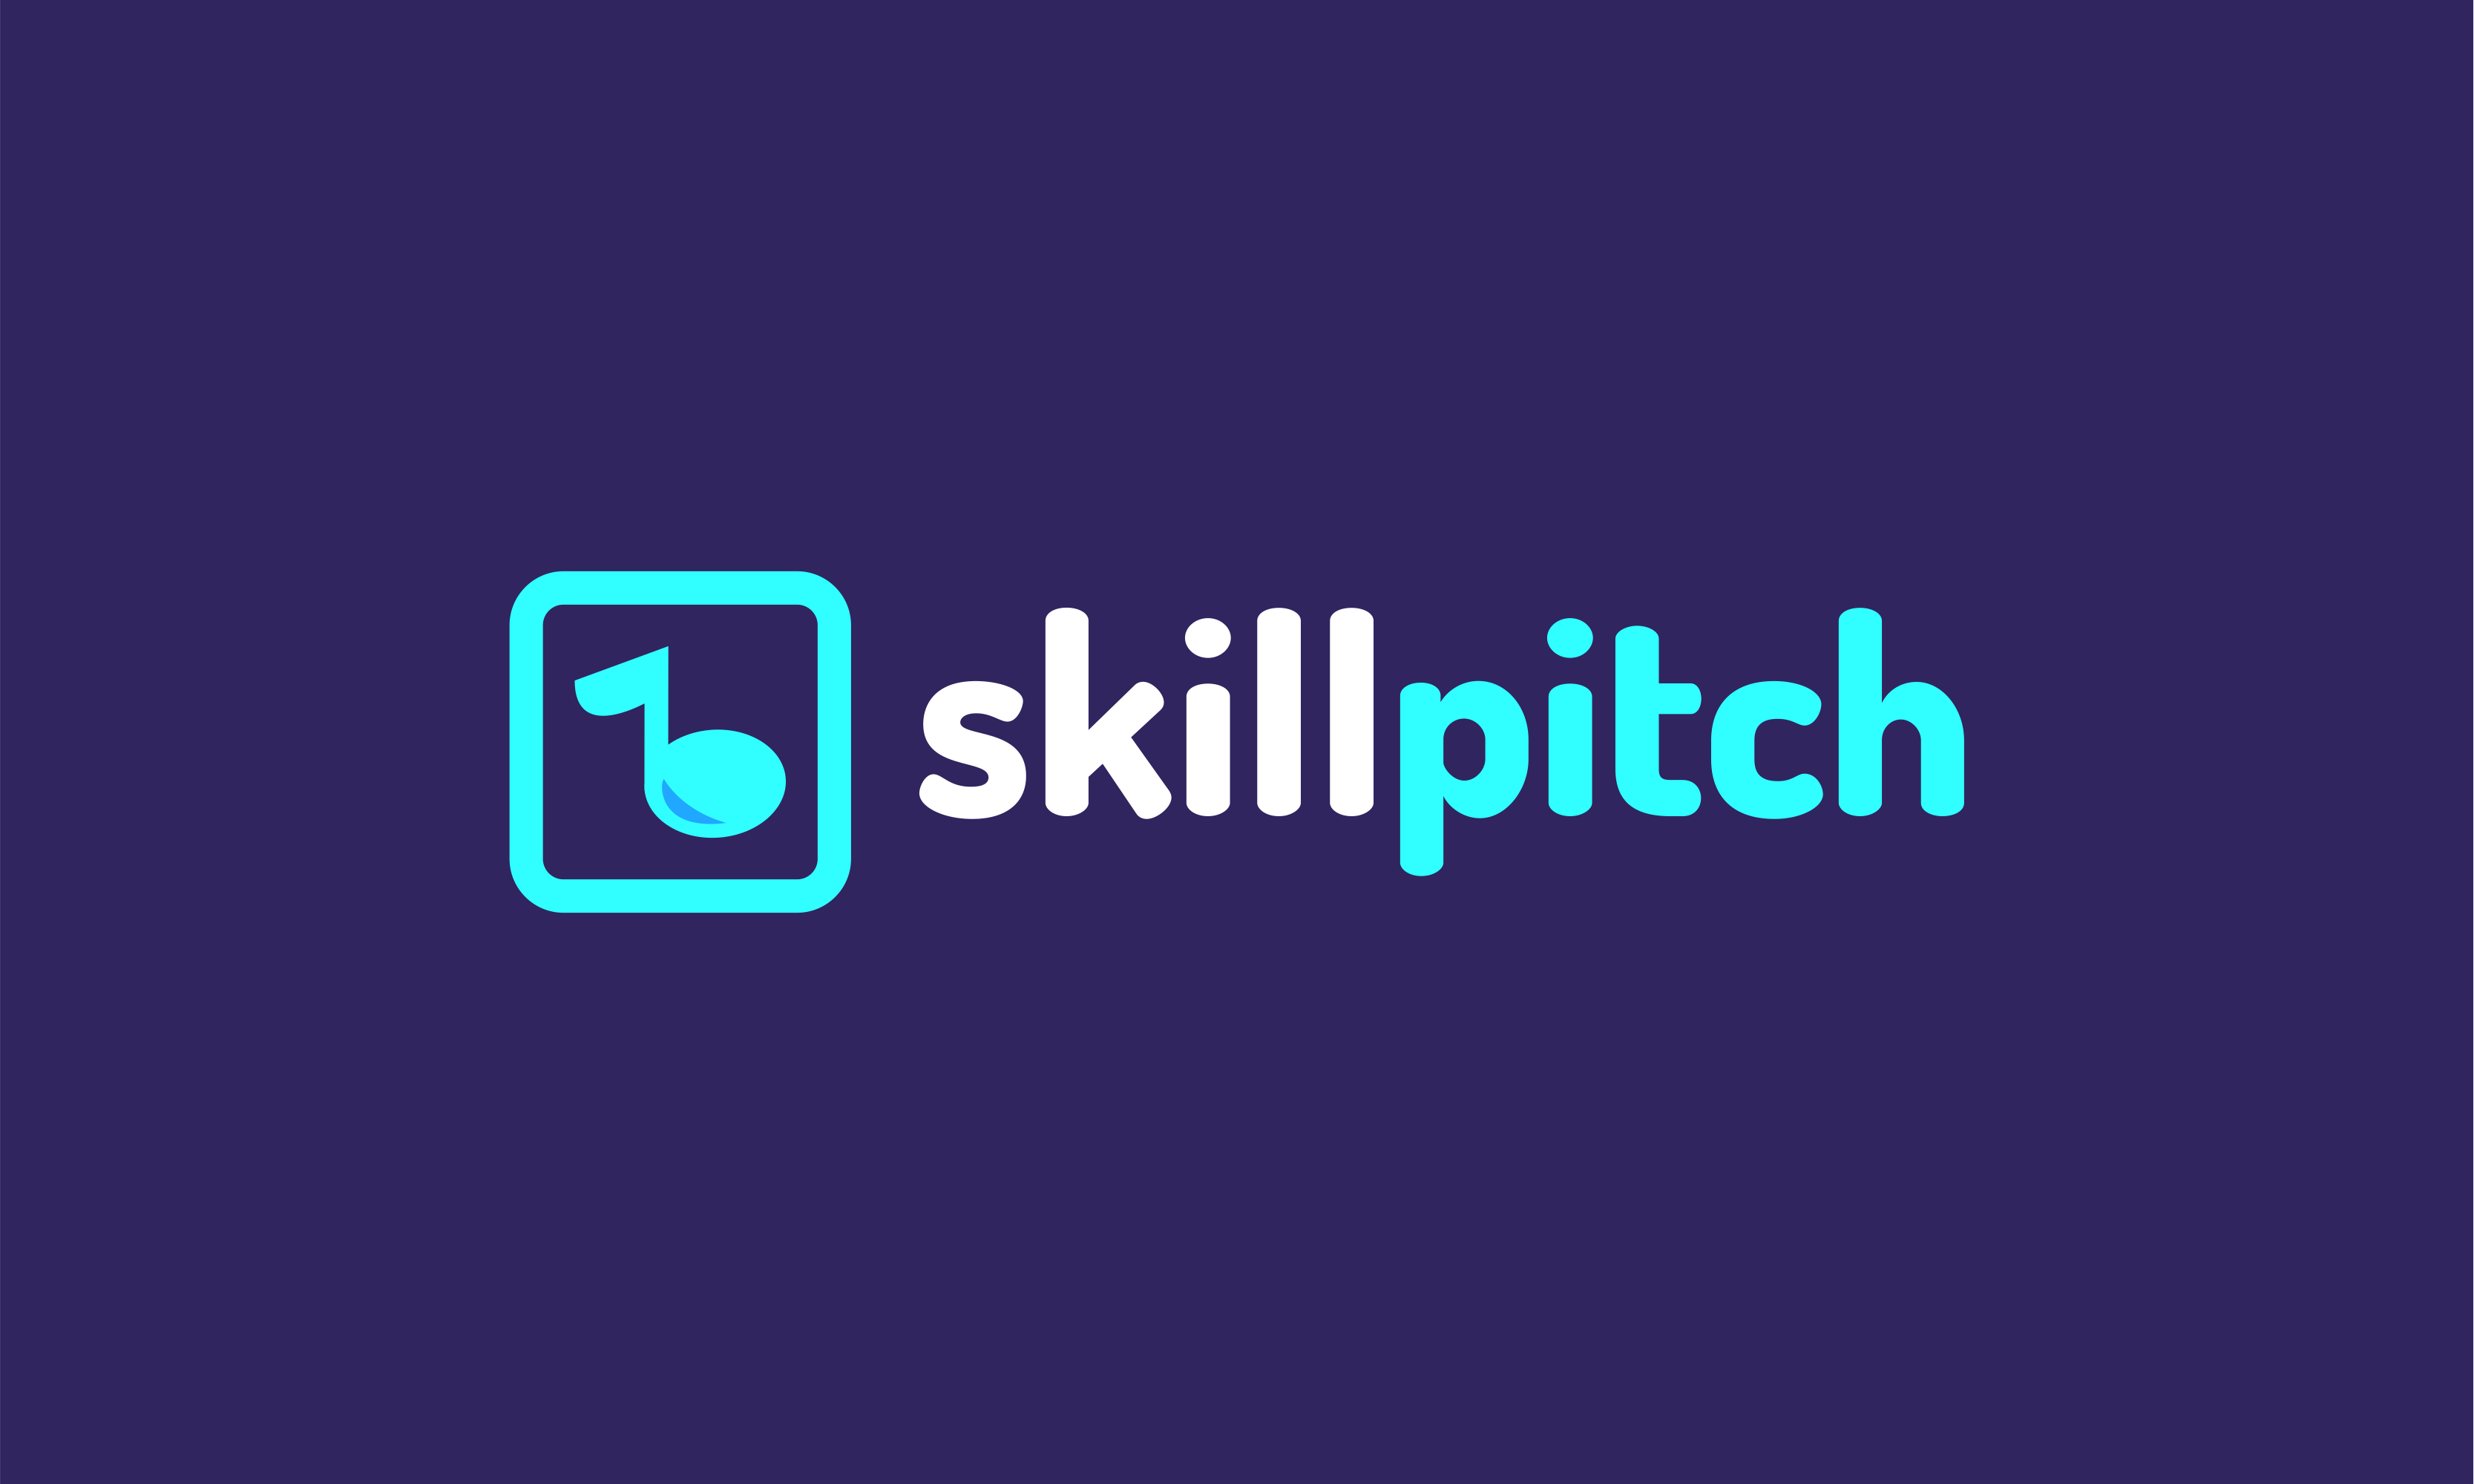 Skillpitch